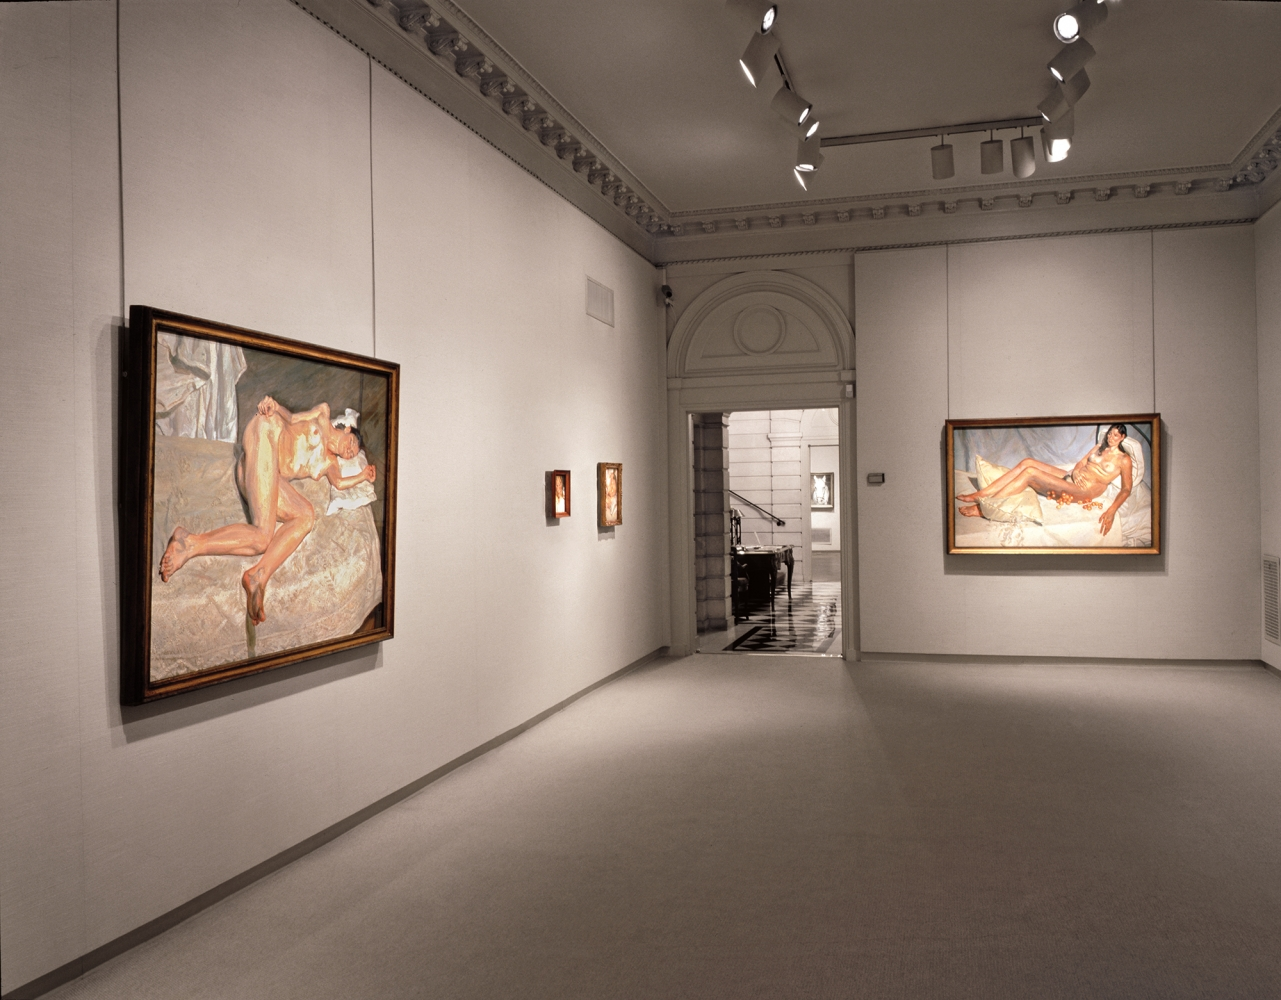 Installation view of Lucian Freud: Recent Work, April 10 - May 19, 2000. Art © The Lucian Freud Archive / Bridgeman Images.